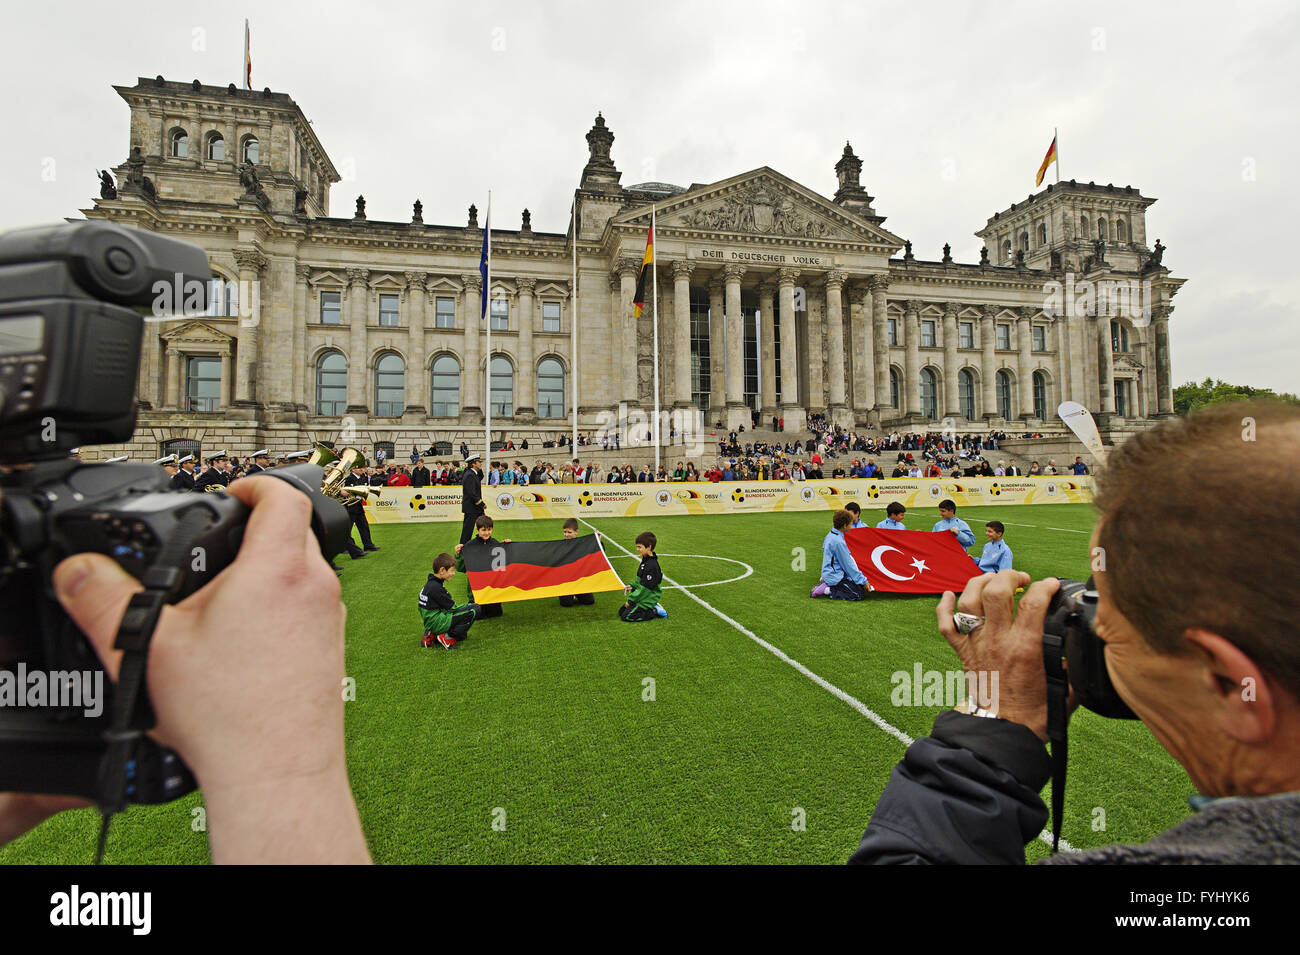 The blind footballing teams of Germany and Turkey - Stock Image